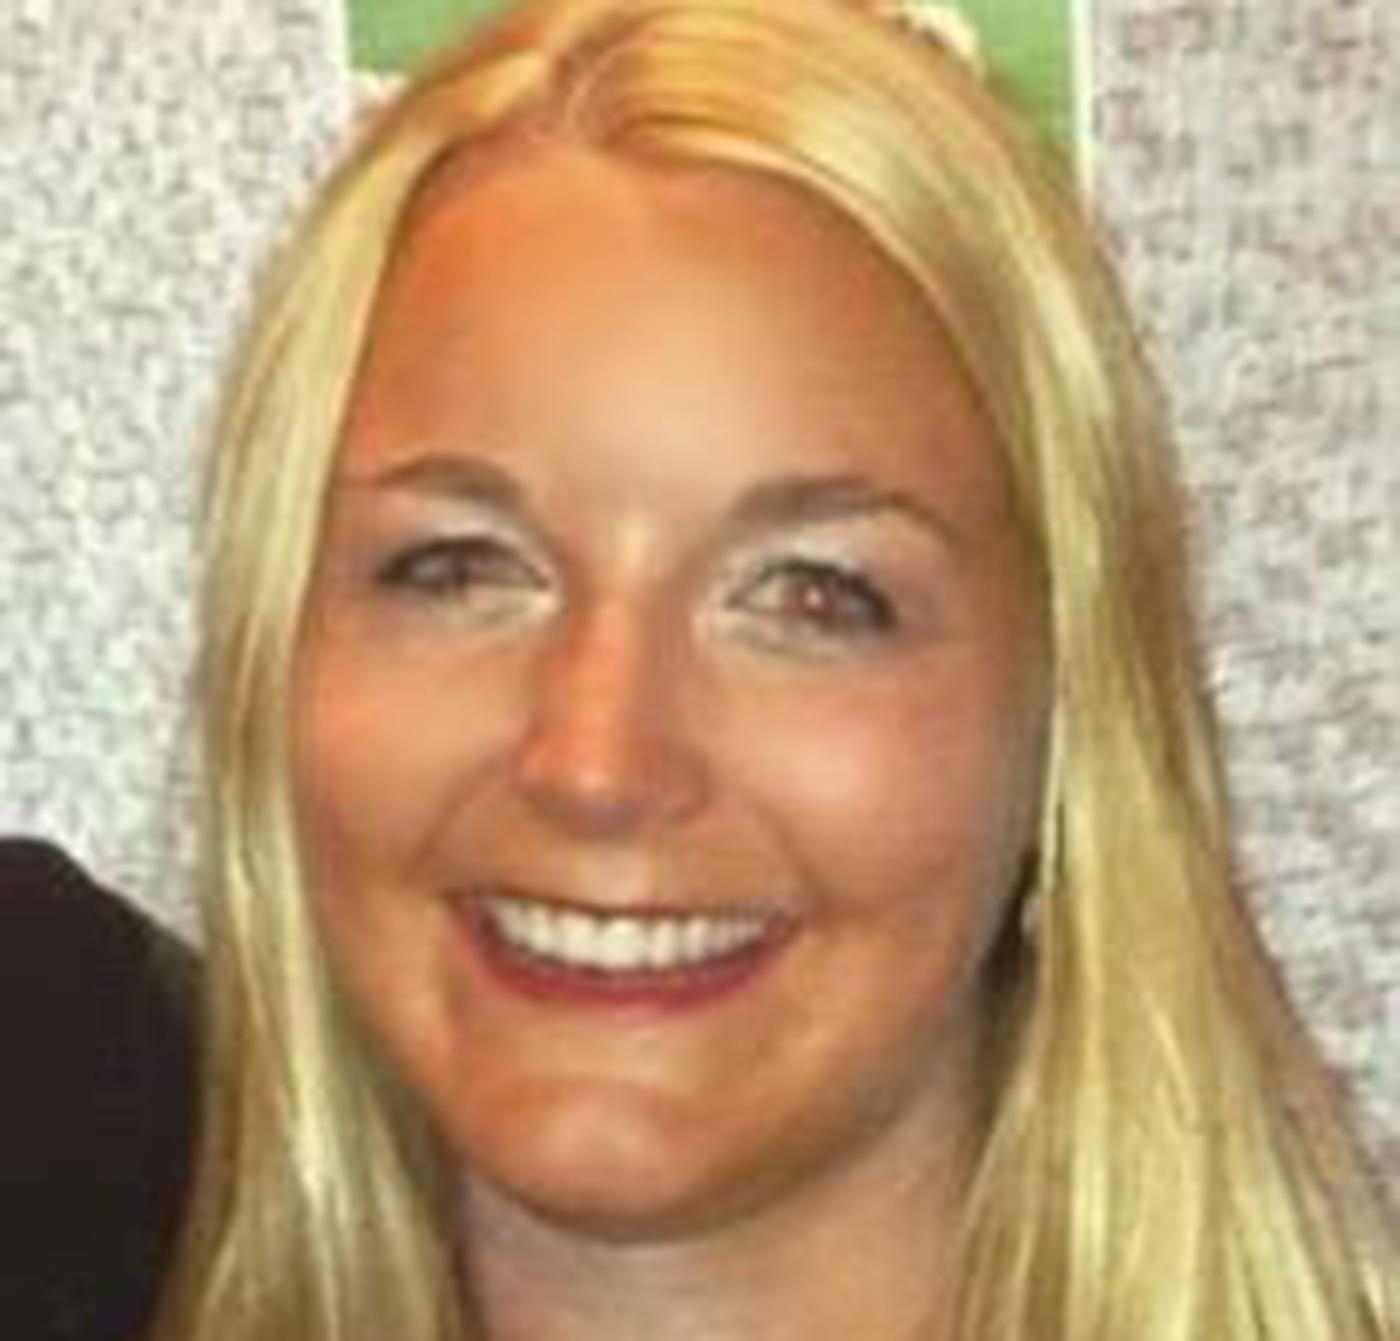 Search for Missing Minnesota College Student Jen Houle - NBC News